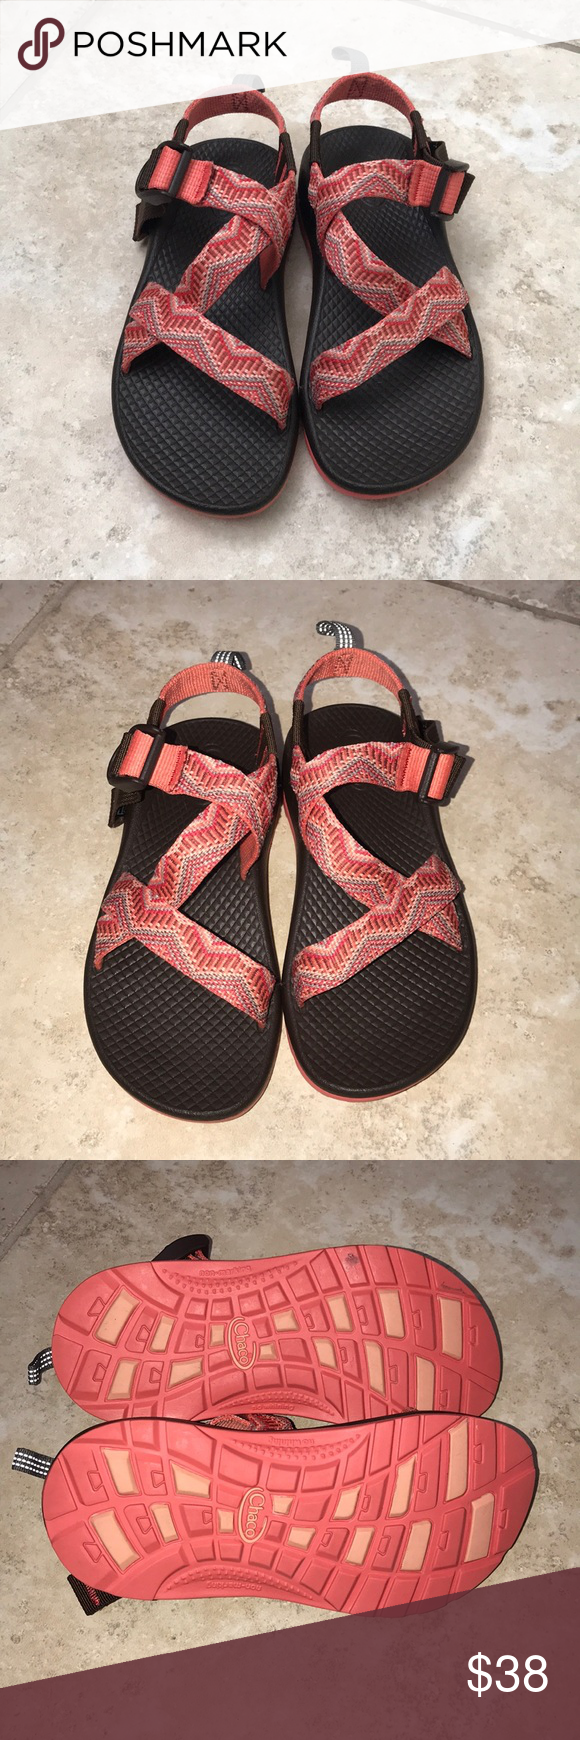 d6cd7ec956d9 Chaco Sandals These are in great condition. Size 13 - daughter wore these  maybe 3